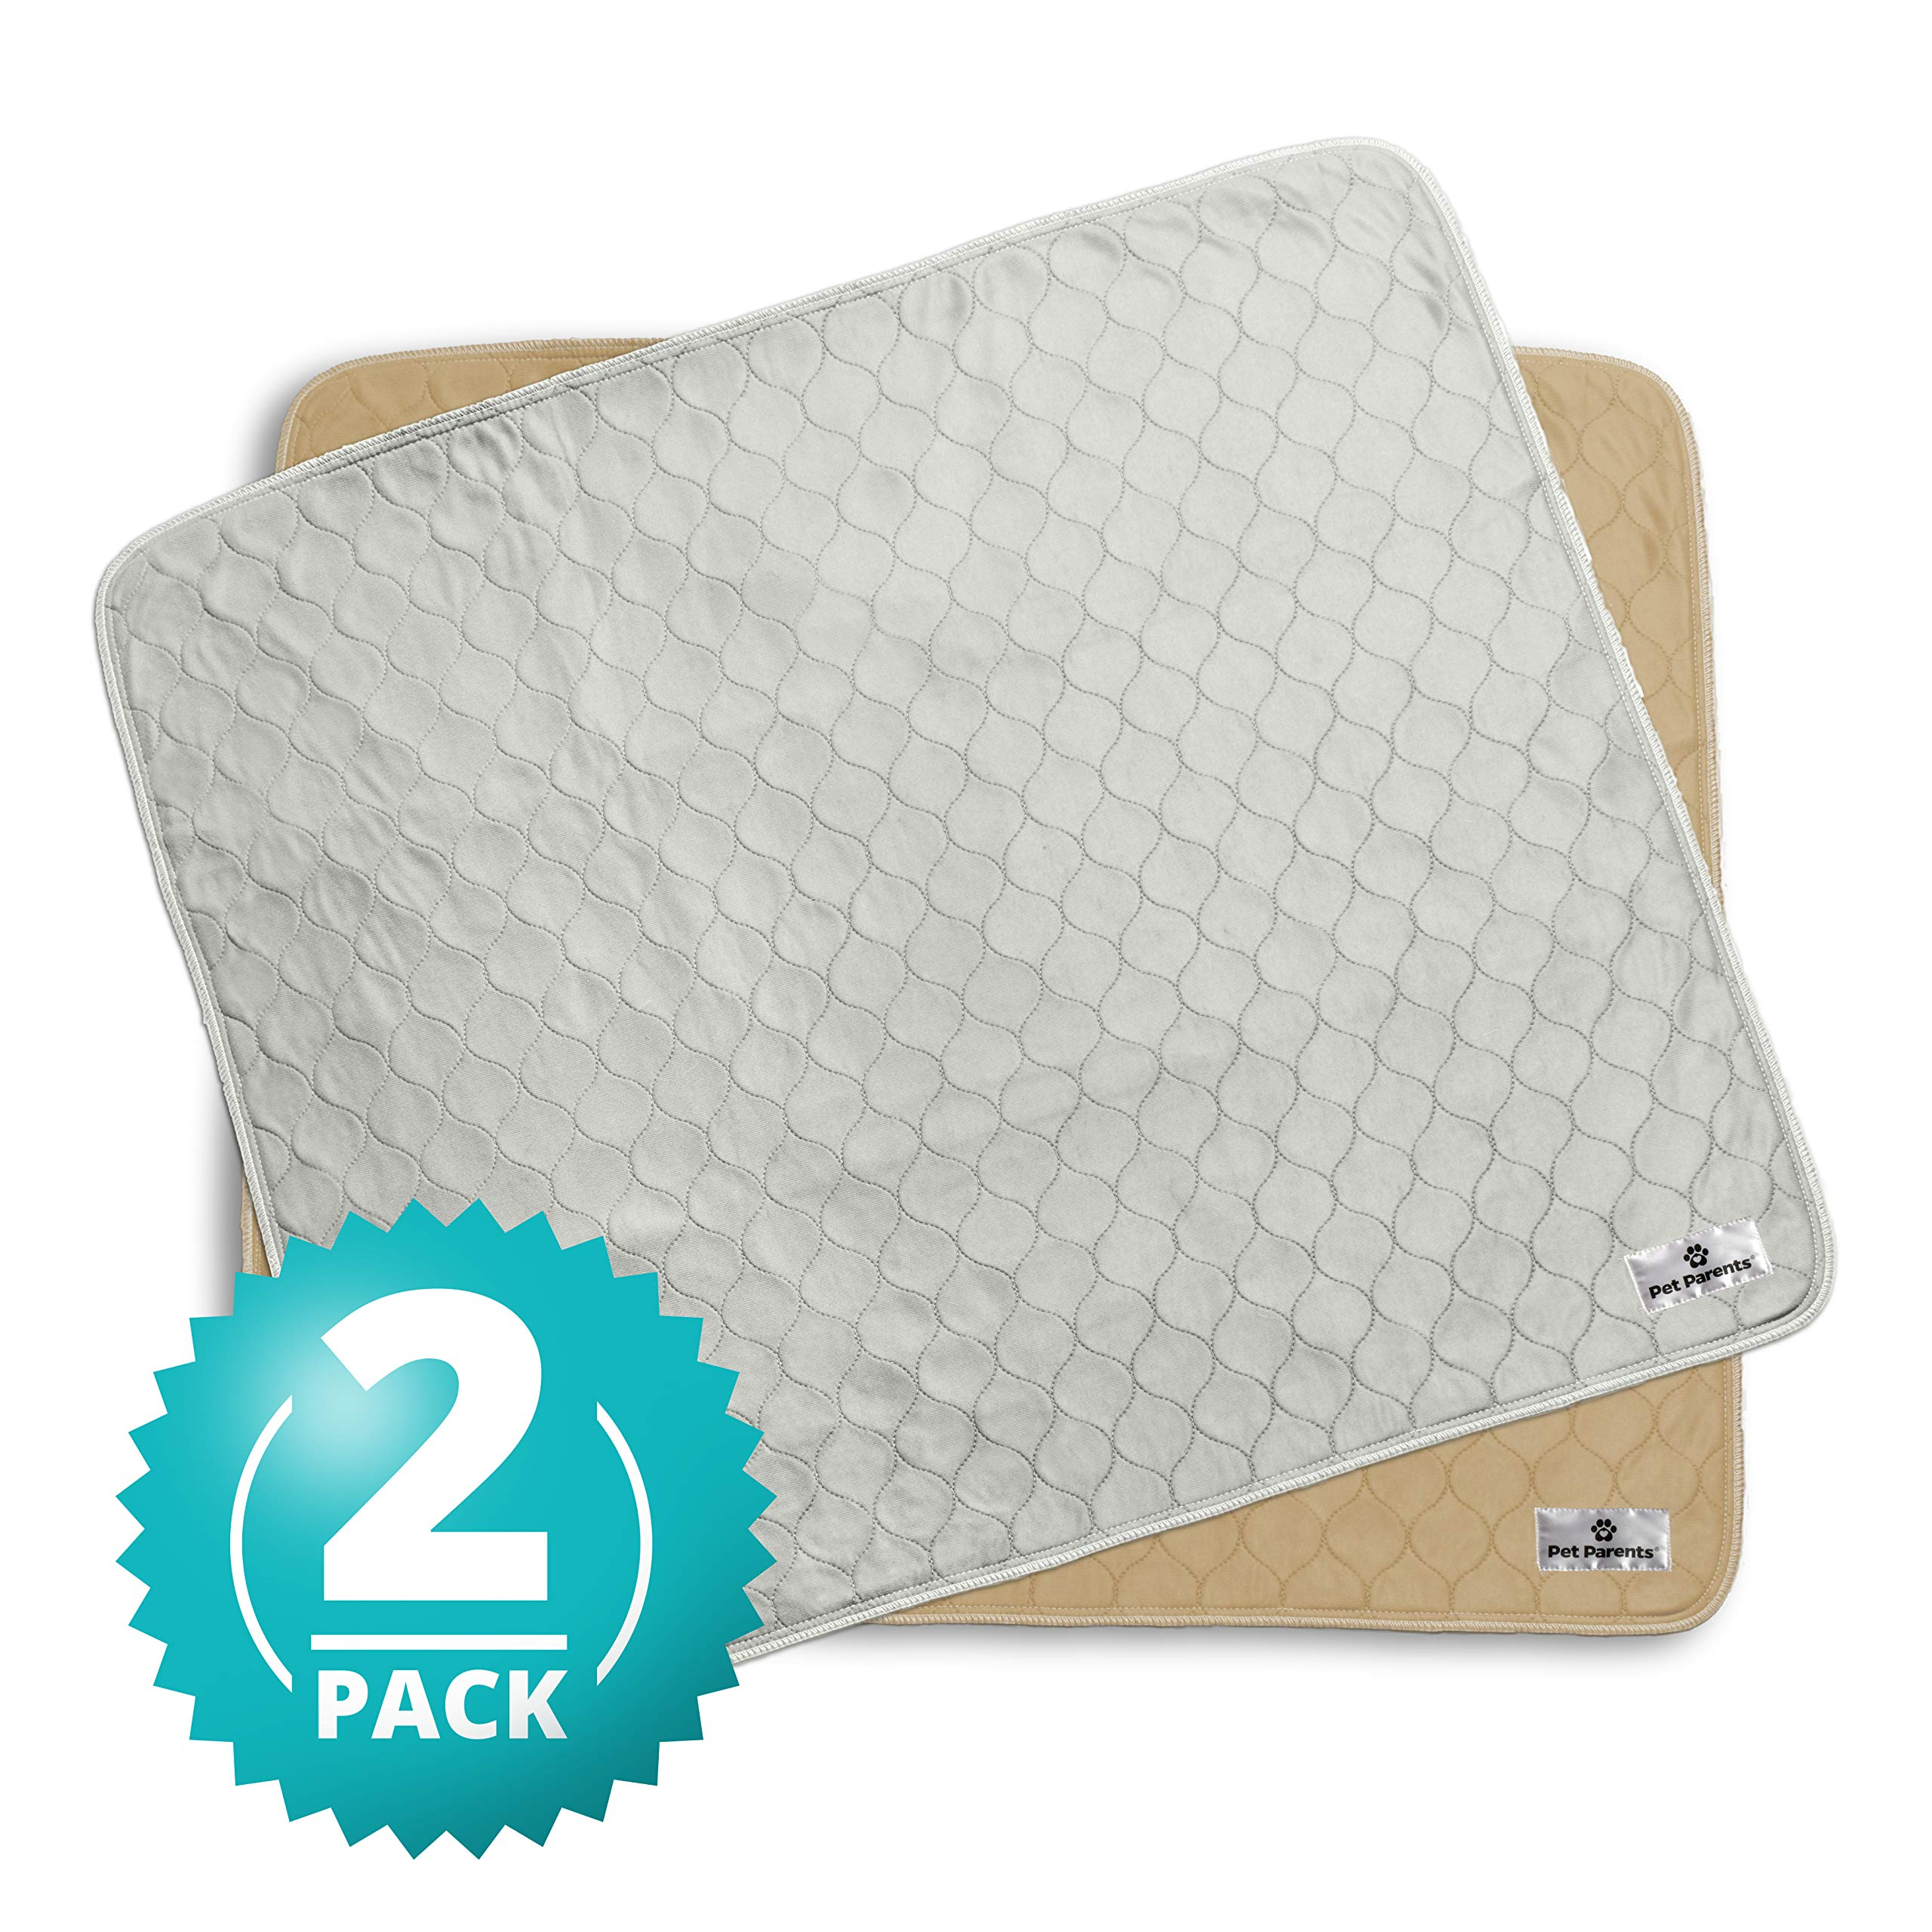 Pet Parents Washable Dog Pee Pads (2pack) of (34x36) Premium Pee Pads for Dogs, Waterproof Whelping Pads, Reusable Dog Training Pads, Quality Travel Pet Pee Pads. Modern Puppy Pads! (1 Tan & 1 Grey) by Pet Parents